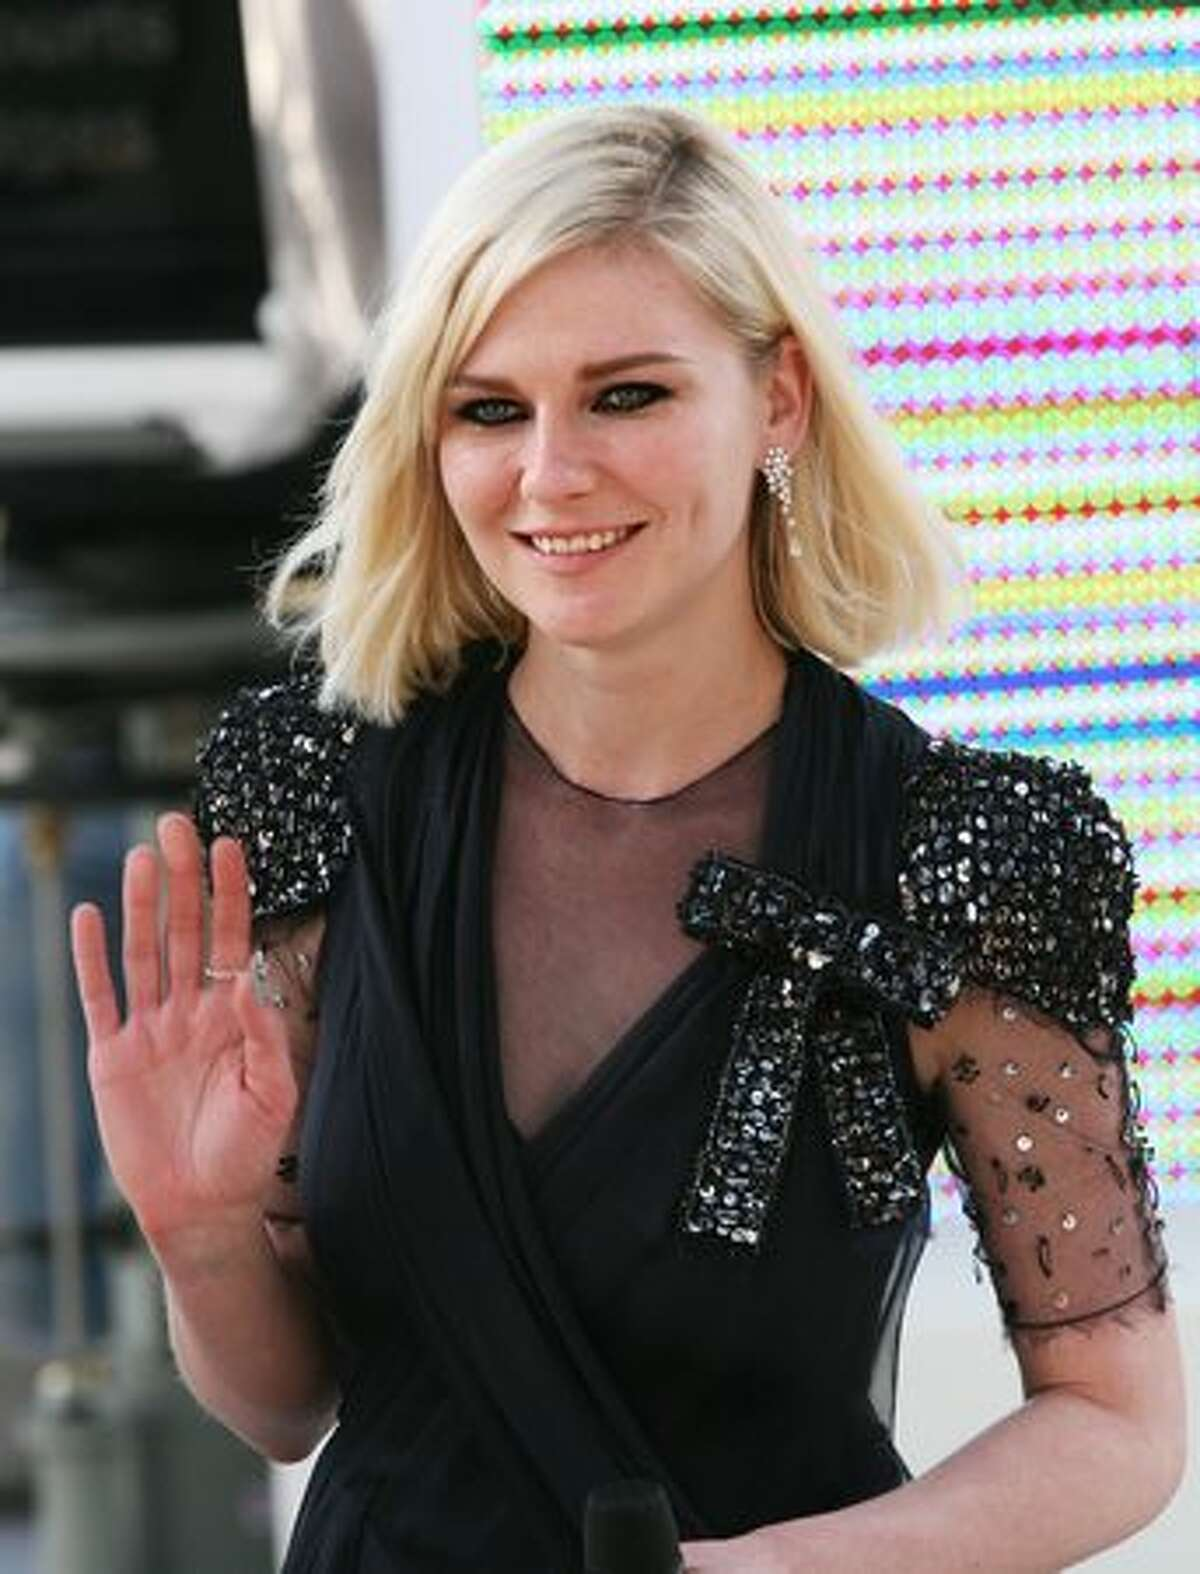 """US actress Kirsten Dunst attends the Canal+ TV show """"Le Grand Journal"""" during the 63rd Cannes Film Festival on May 20, 2010 in Cannes."""